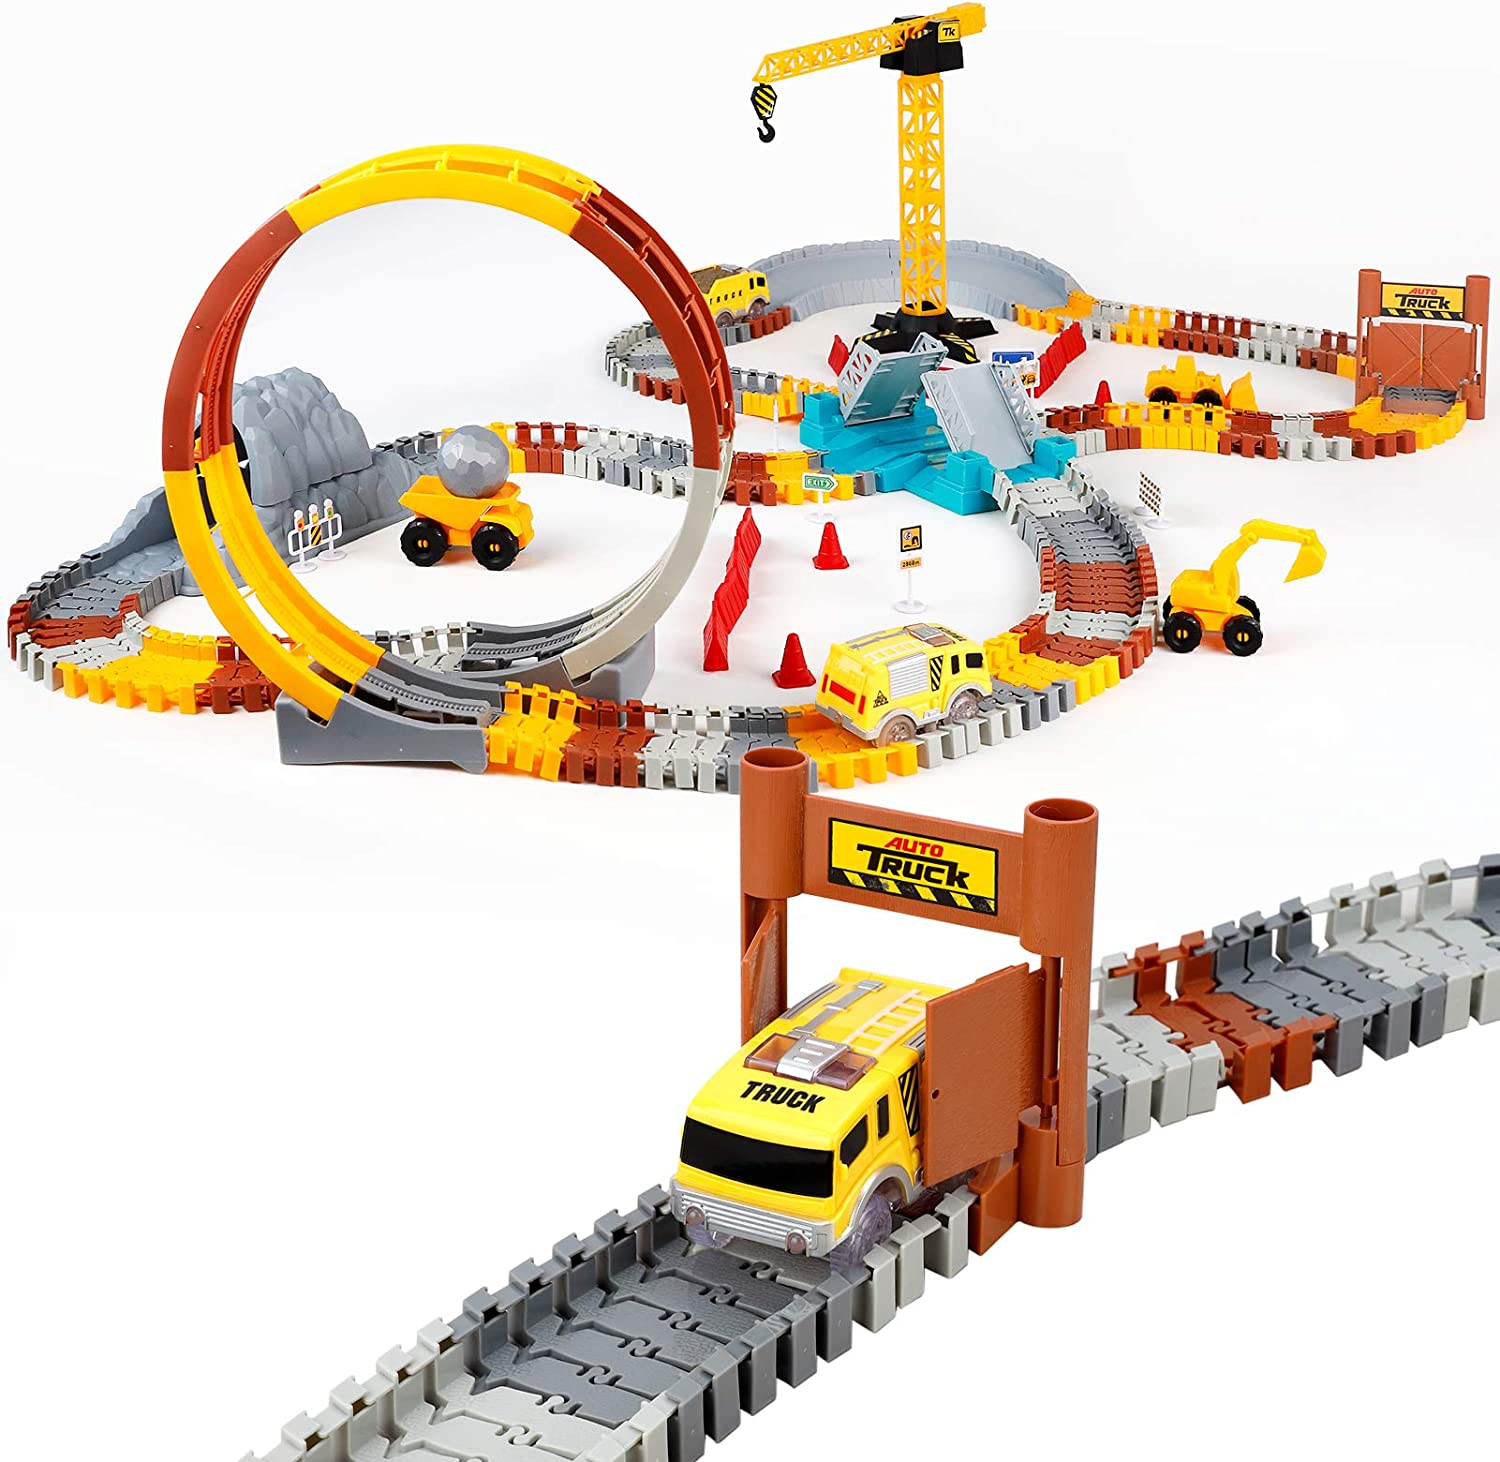 226pcs Construction Themed Race Tracks Set, Flexible Trains Tracks With 2 Race Trucks, Toy Cars Set for 2 3 4 5 6 7 Years Old Child Kids Boys and Girls, Road Race Playset for Christmas Birthday Gift